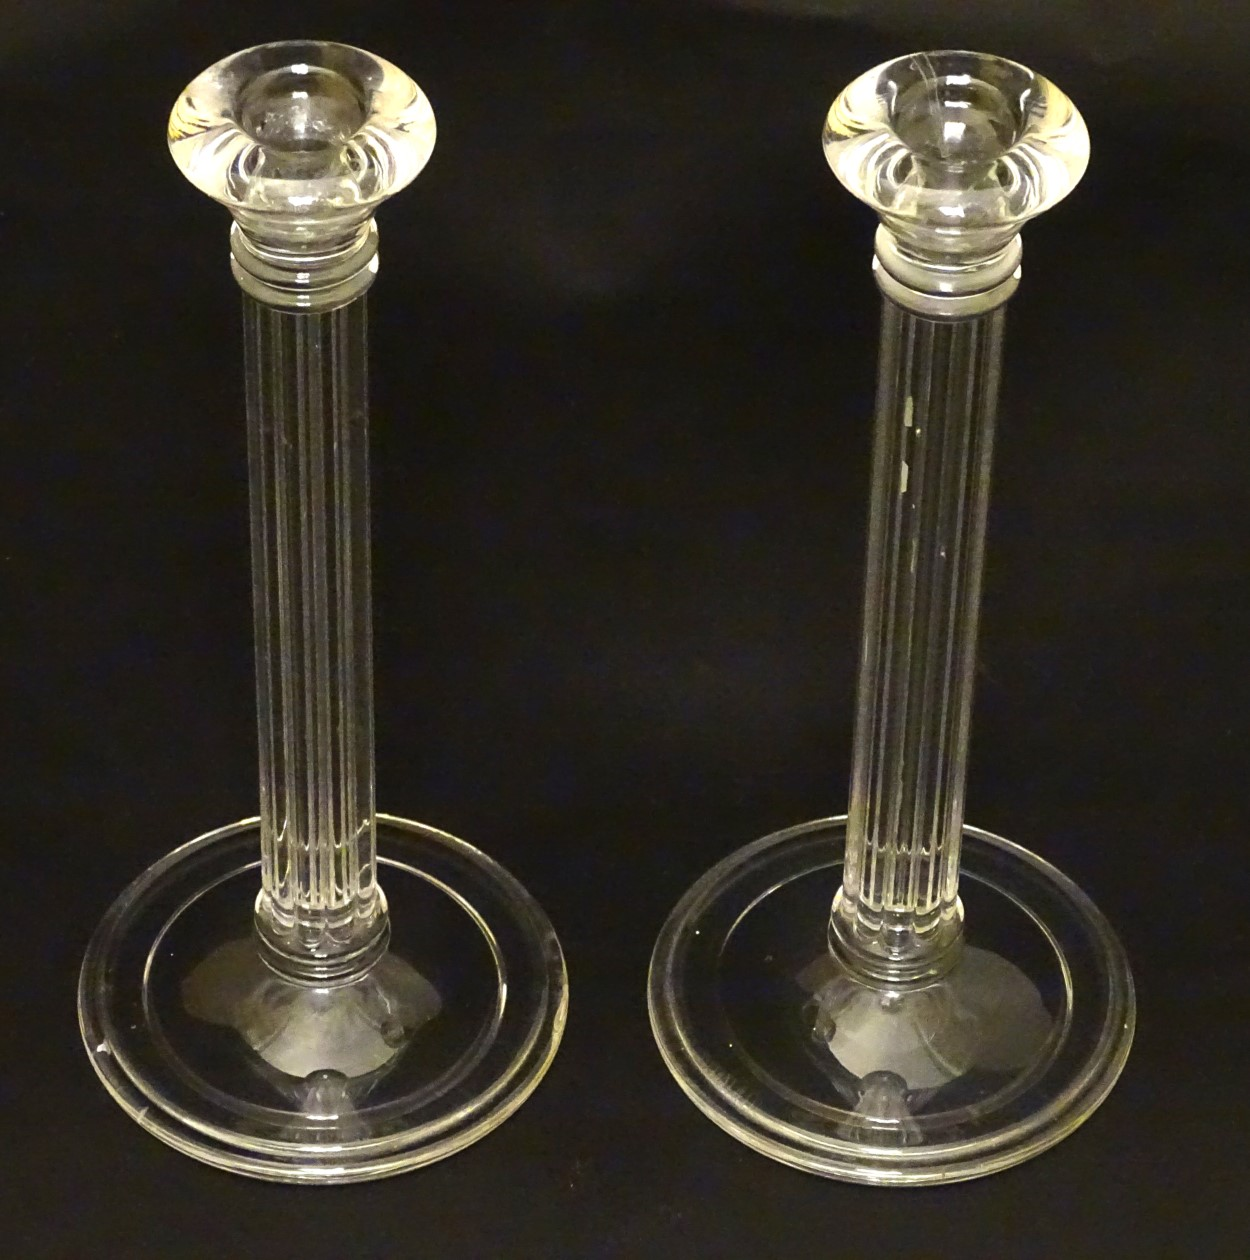 Lot 100 - Tiffany & Co: A pair of pedestal glass candlesticks with receded columns ,